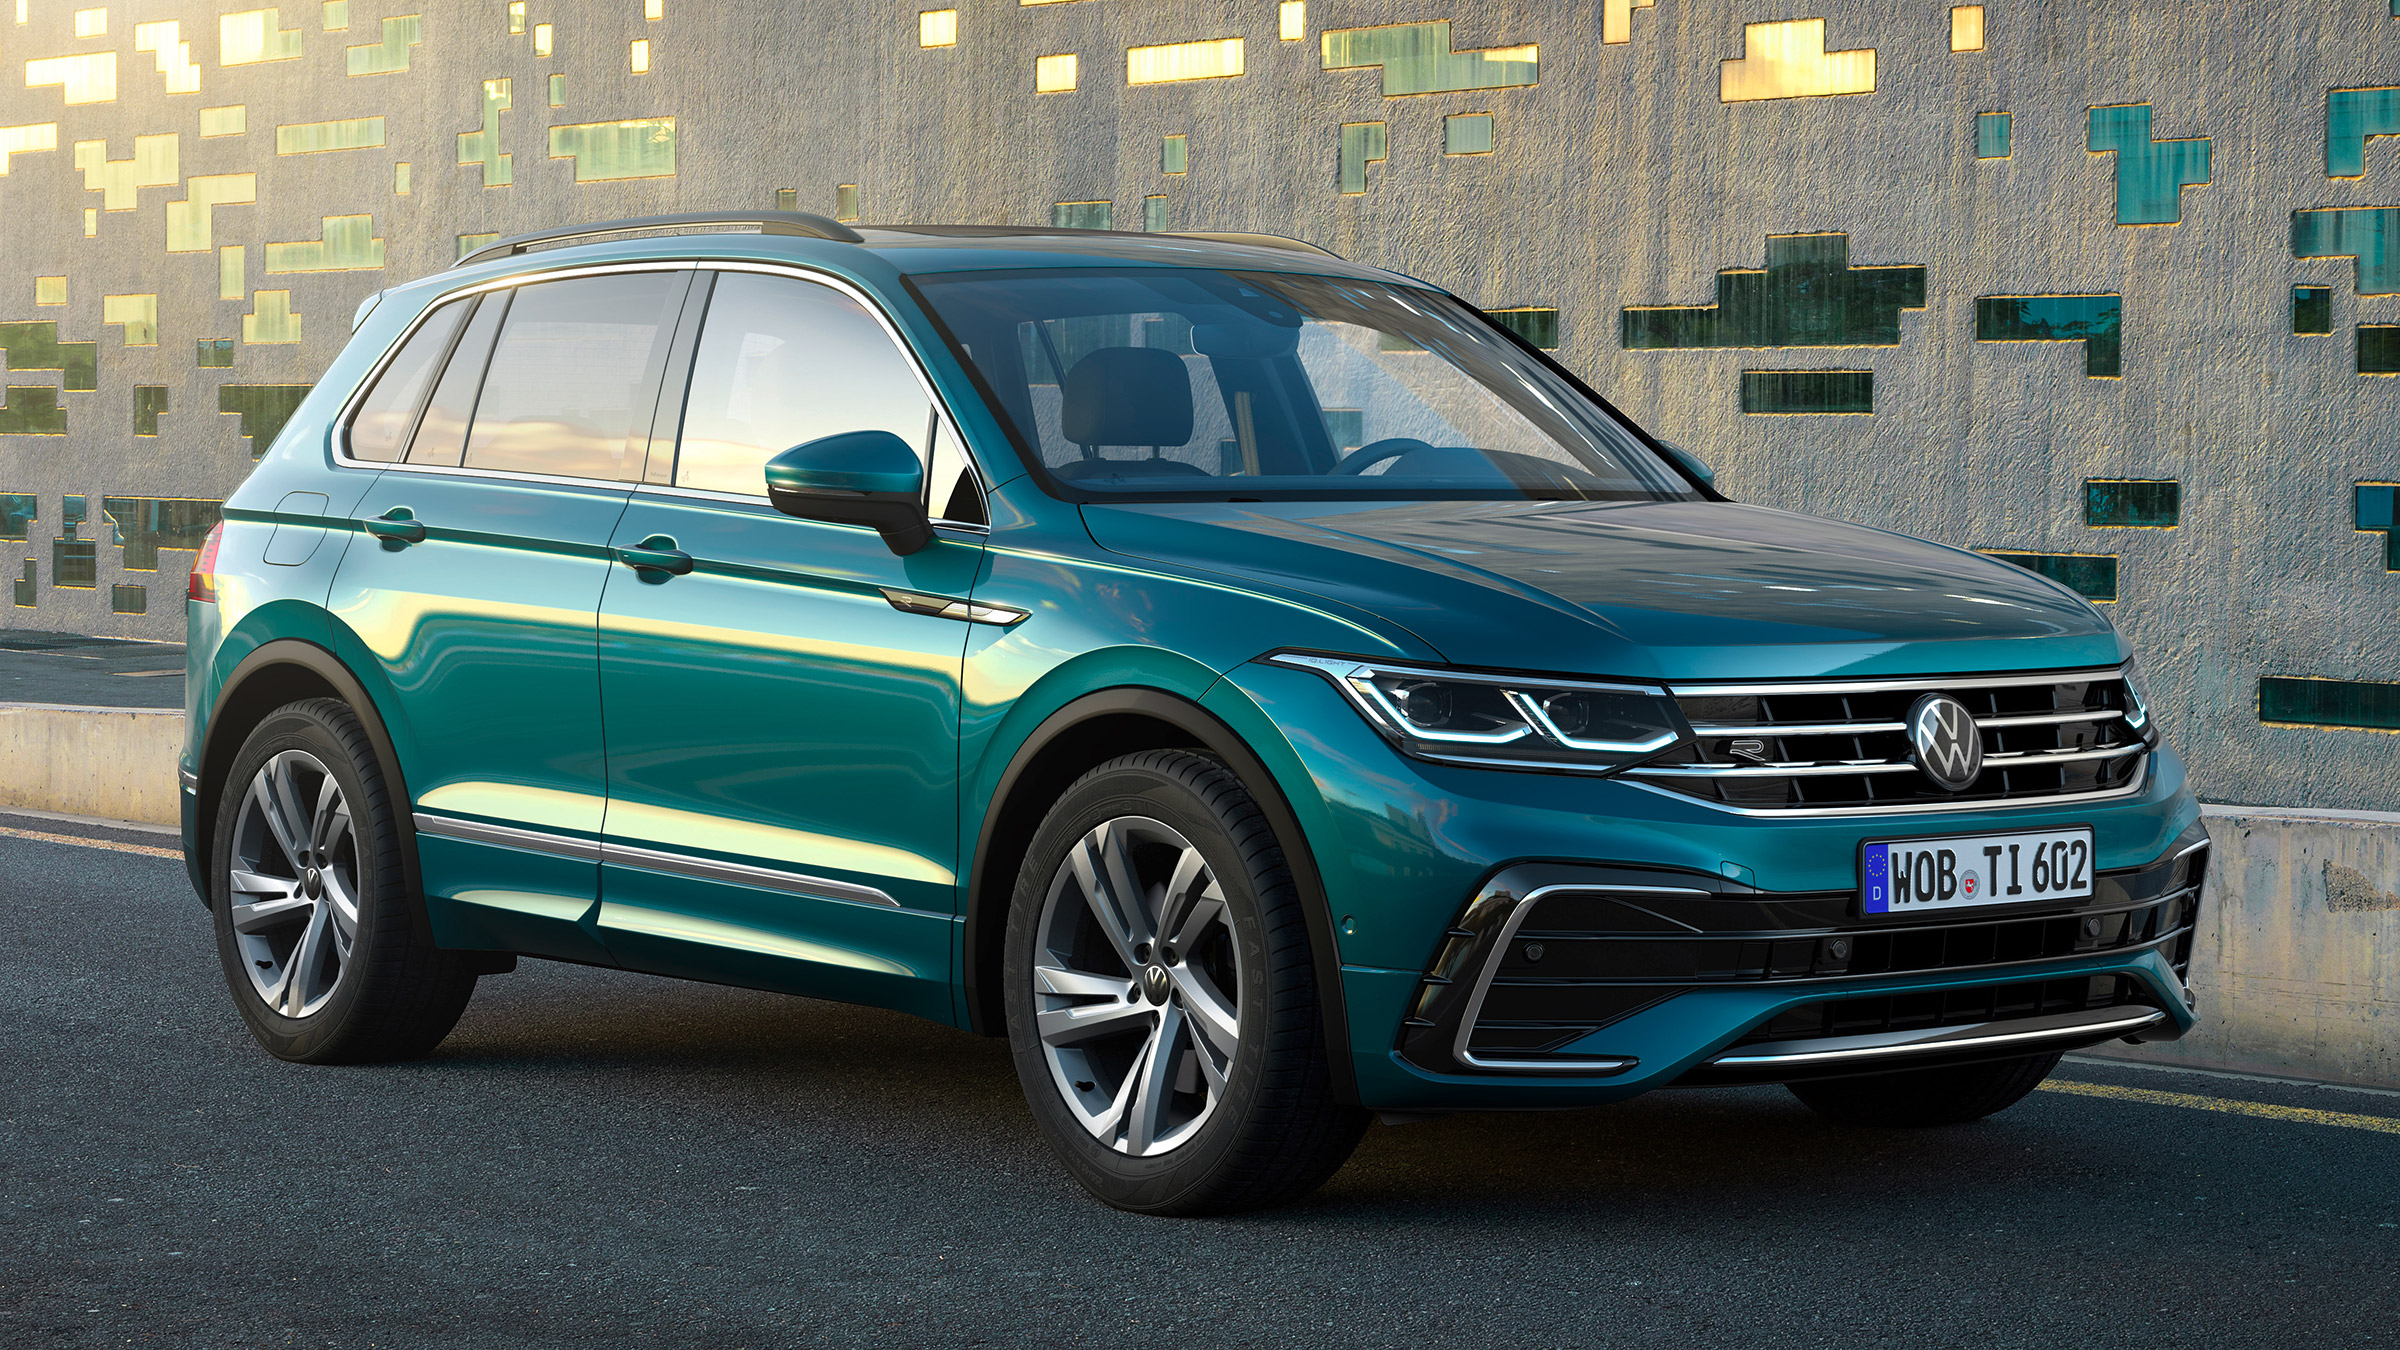 New 2020 Volkswagen Tiguan facelift arrives with design and tech updates